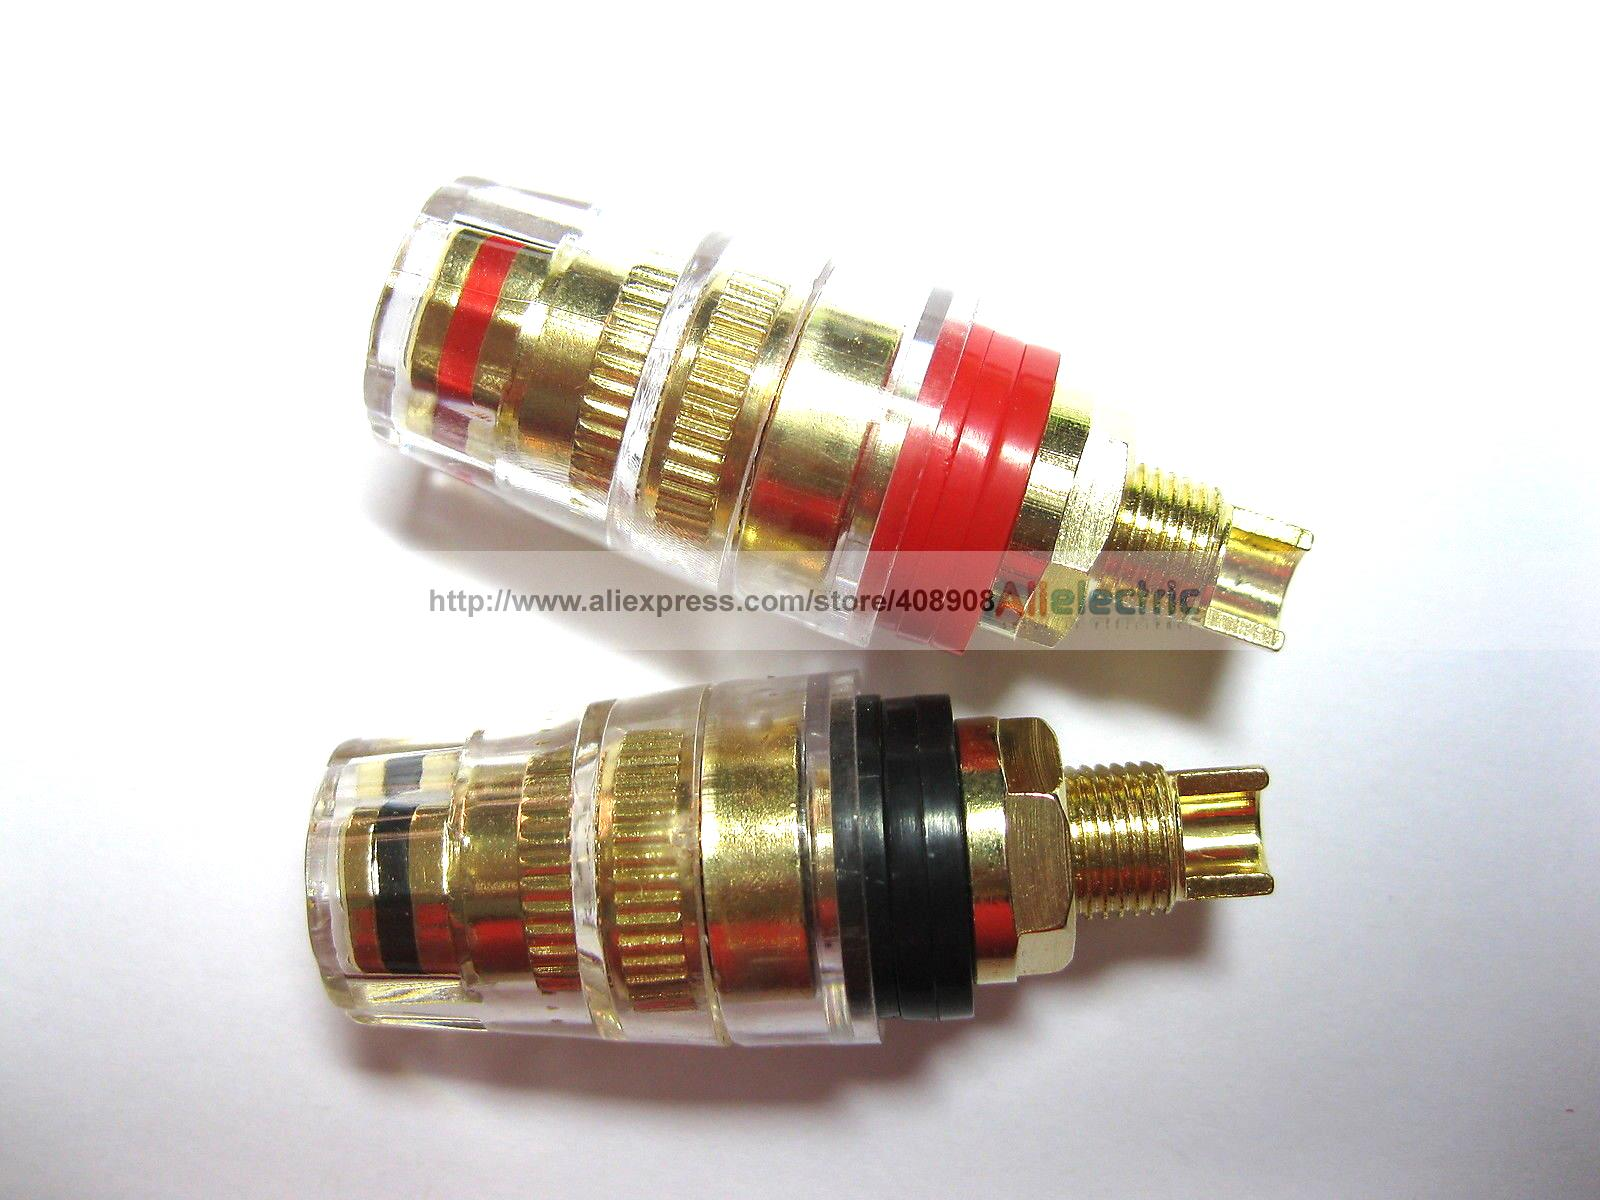 10 Pcs Audio Speaker Cable Binding Post Connector Gold Plated Solder Type M 46mm areyourshop hot sale 50 pcs musical audio speaker cable wire 4mm gold plated banana plug connector